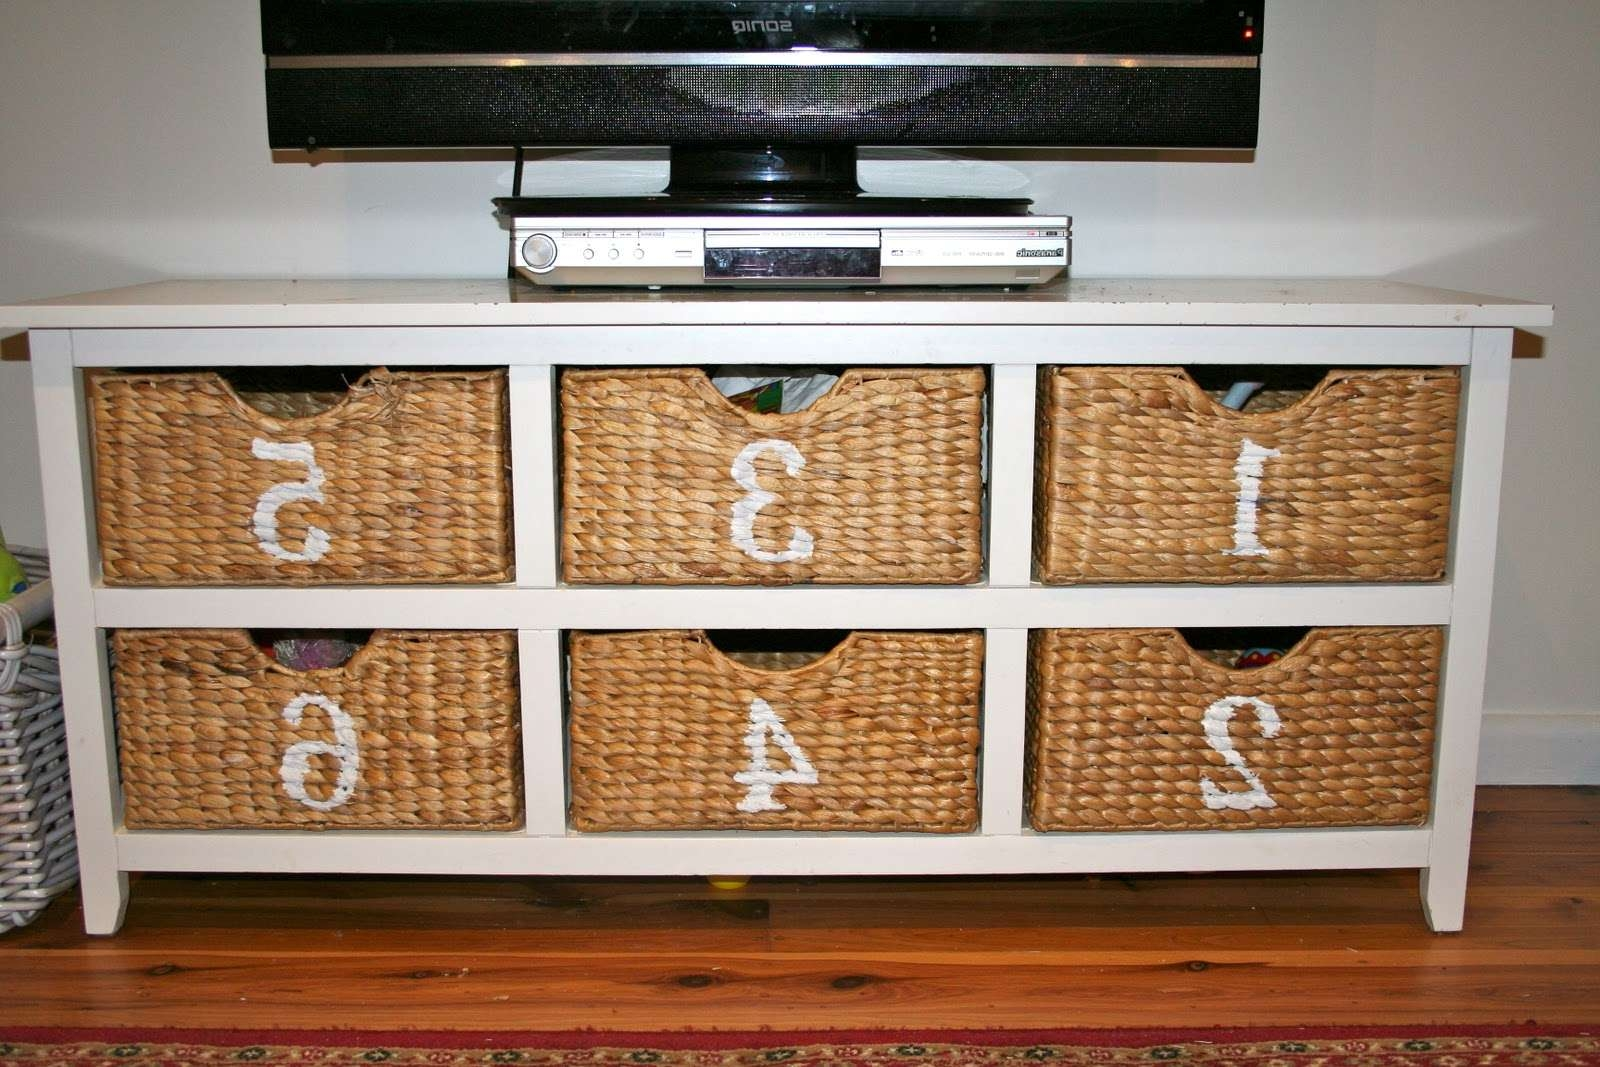 Piquant Toy Storage Unit 8 Cube Storage Unit Rattan Storage Drawer Within Tv Stands With Storage Baskets (View 6 of 15)